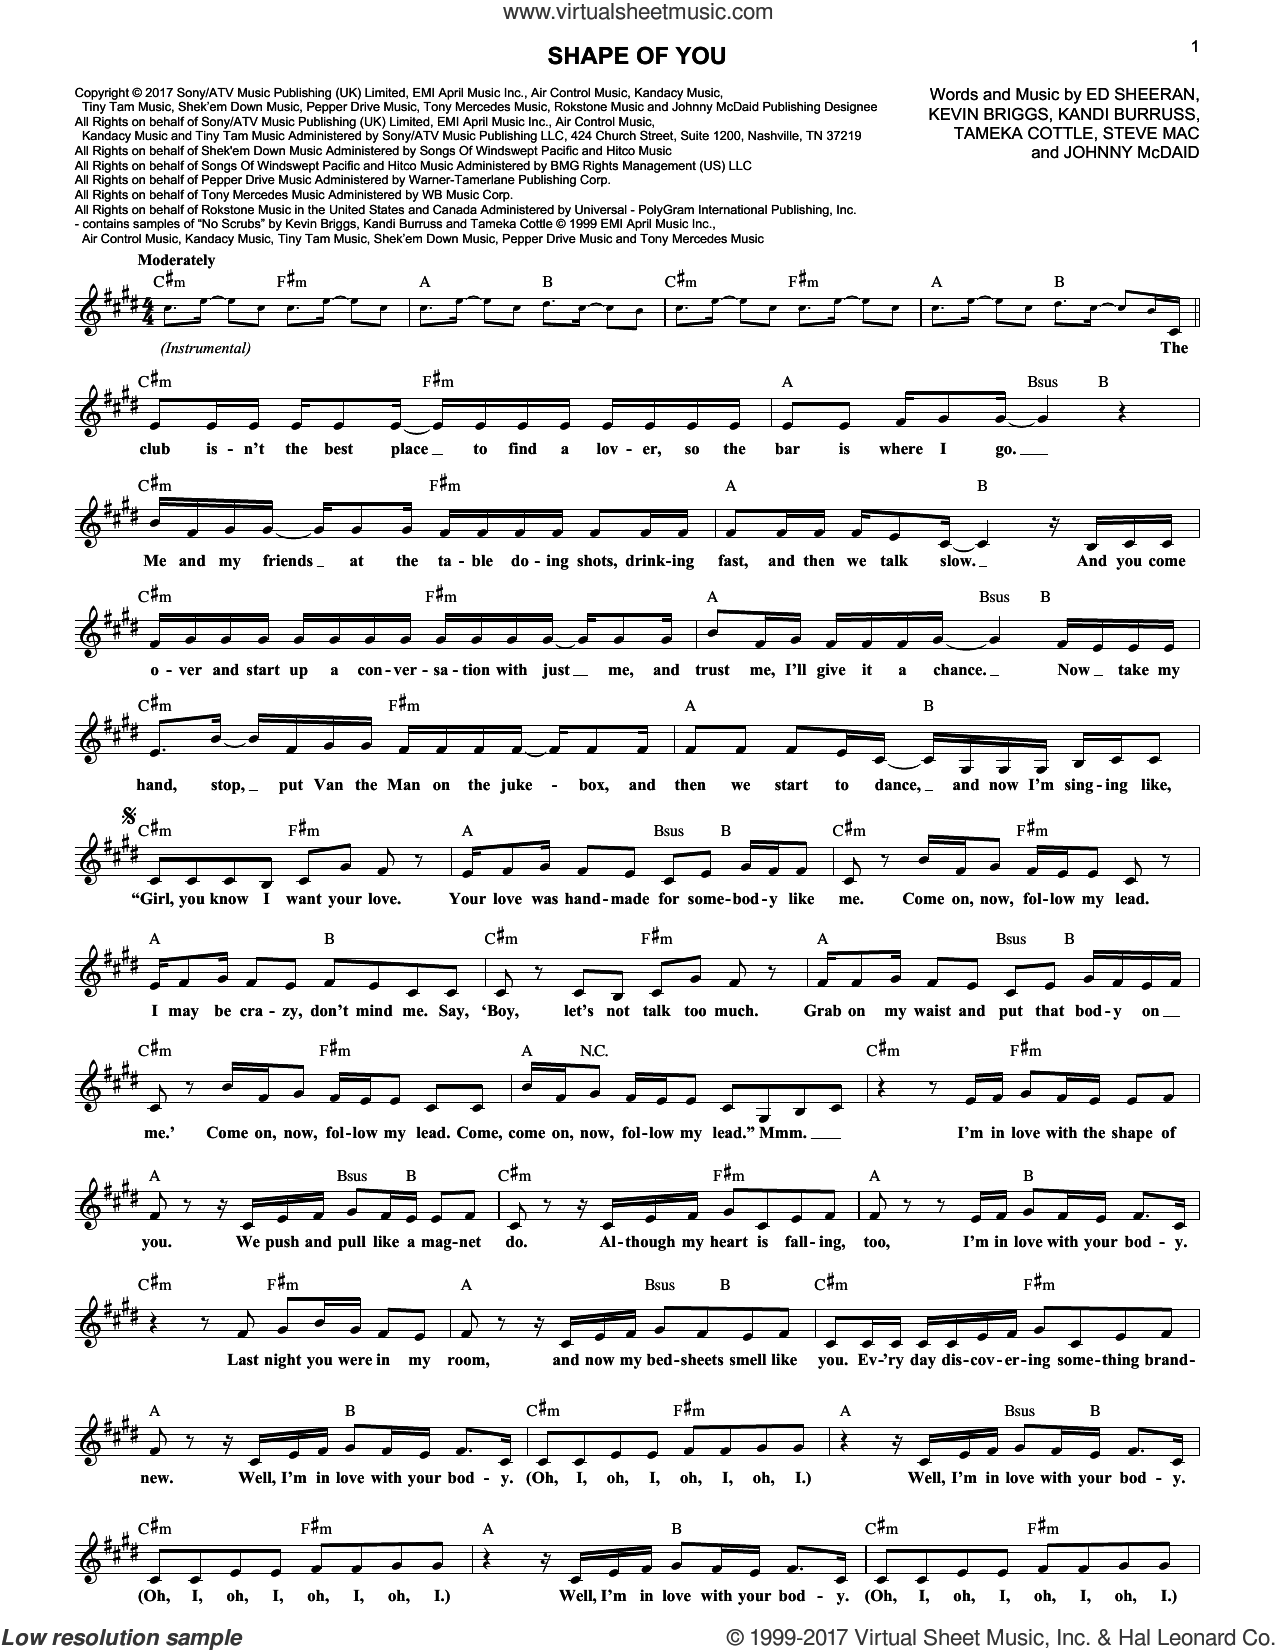 Shape Of You sheet music for voice and other instruments (fake book) by Ed Sheeran, Johnny McDaid, Kandi Burruss, Kevin Briggs, Steve Mac and Tameka Cottle, intermediate skill level